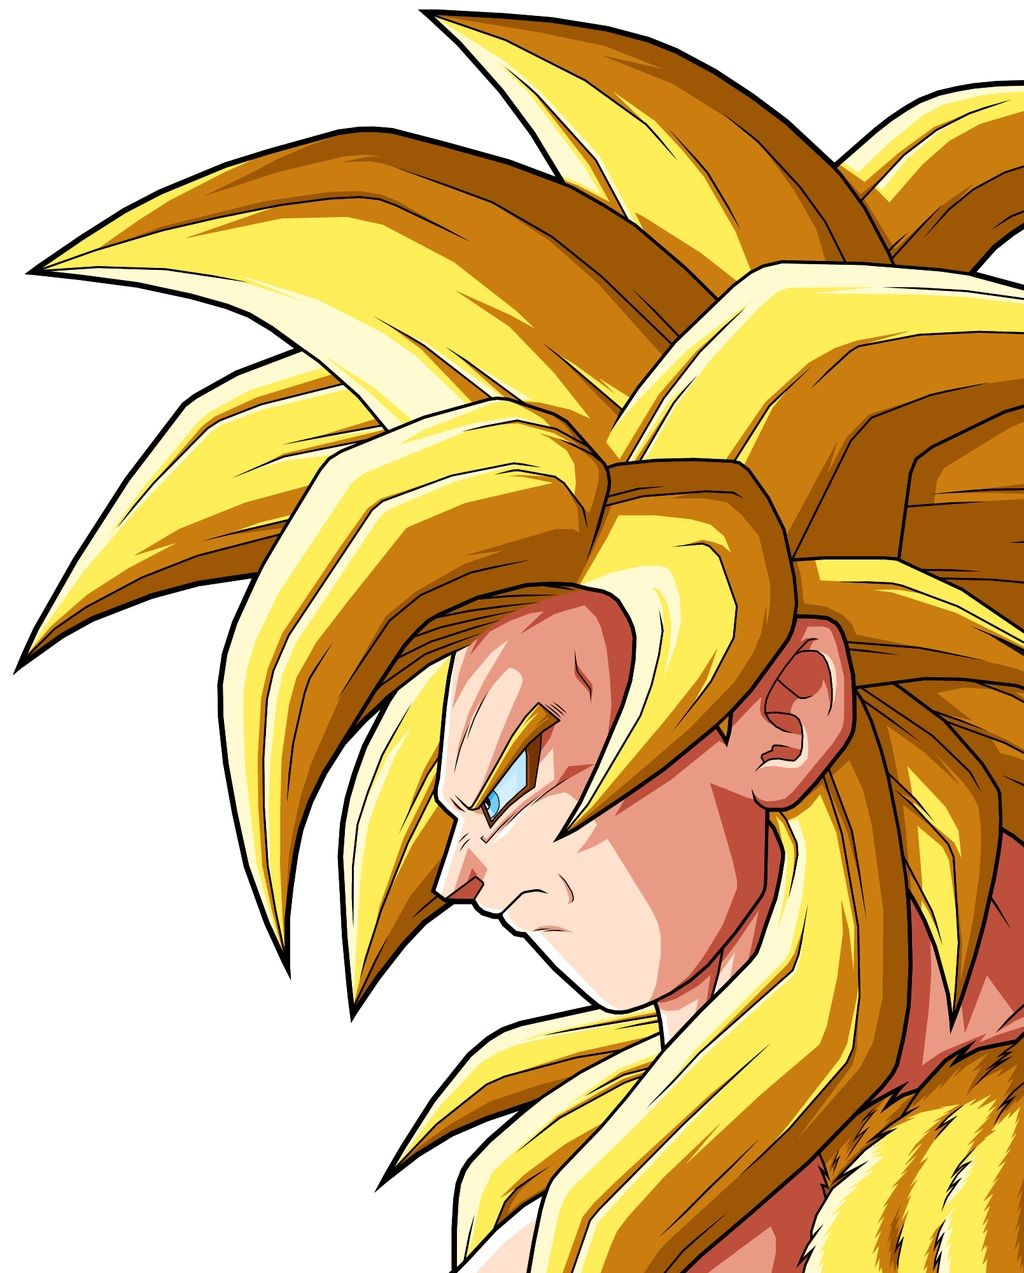 Goku super saiyan 4 gold goku super saiyan god 3 awesome pinterest goku super goku and - Super sayen 10 ...